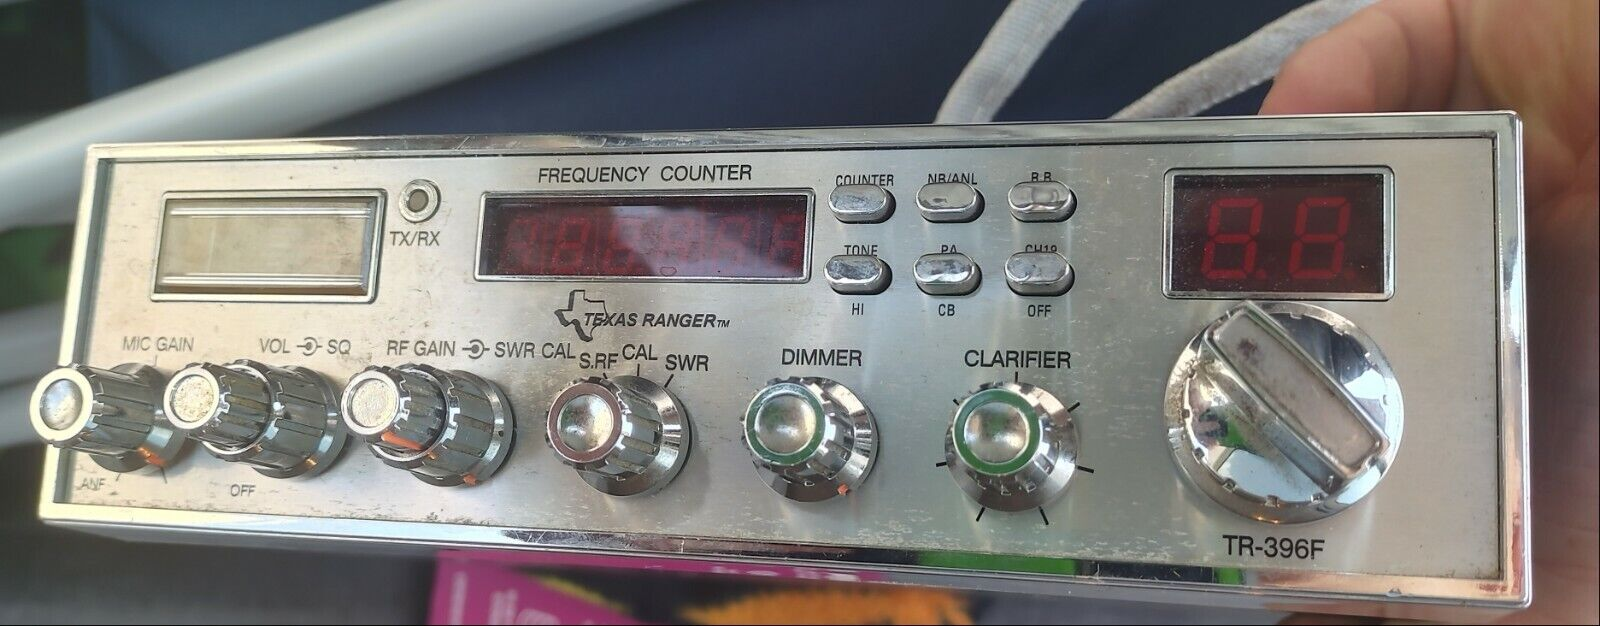 TEXAS RANGER TR396F WITH EXTRAS AND AMP PLEASE READ ADD NOW SINCE MOD LISTING . Buy it now for 300.00